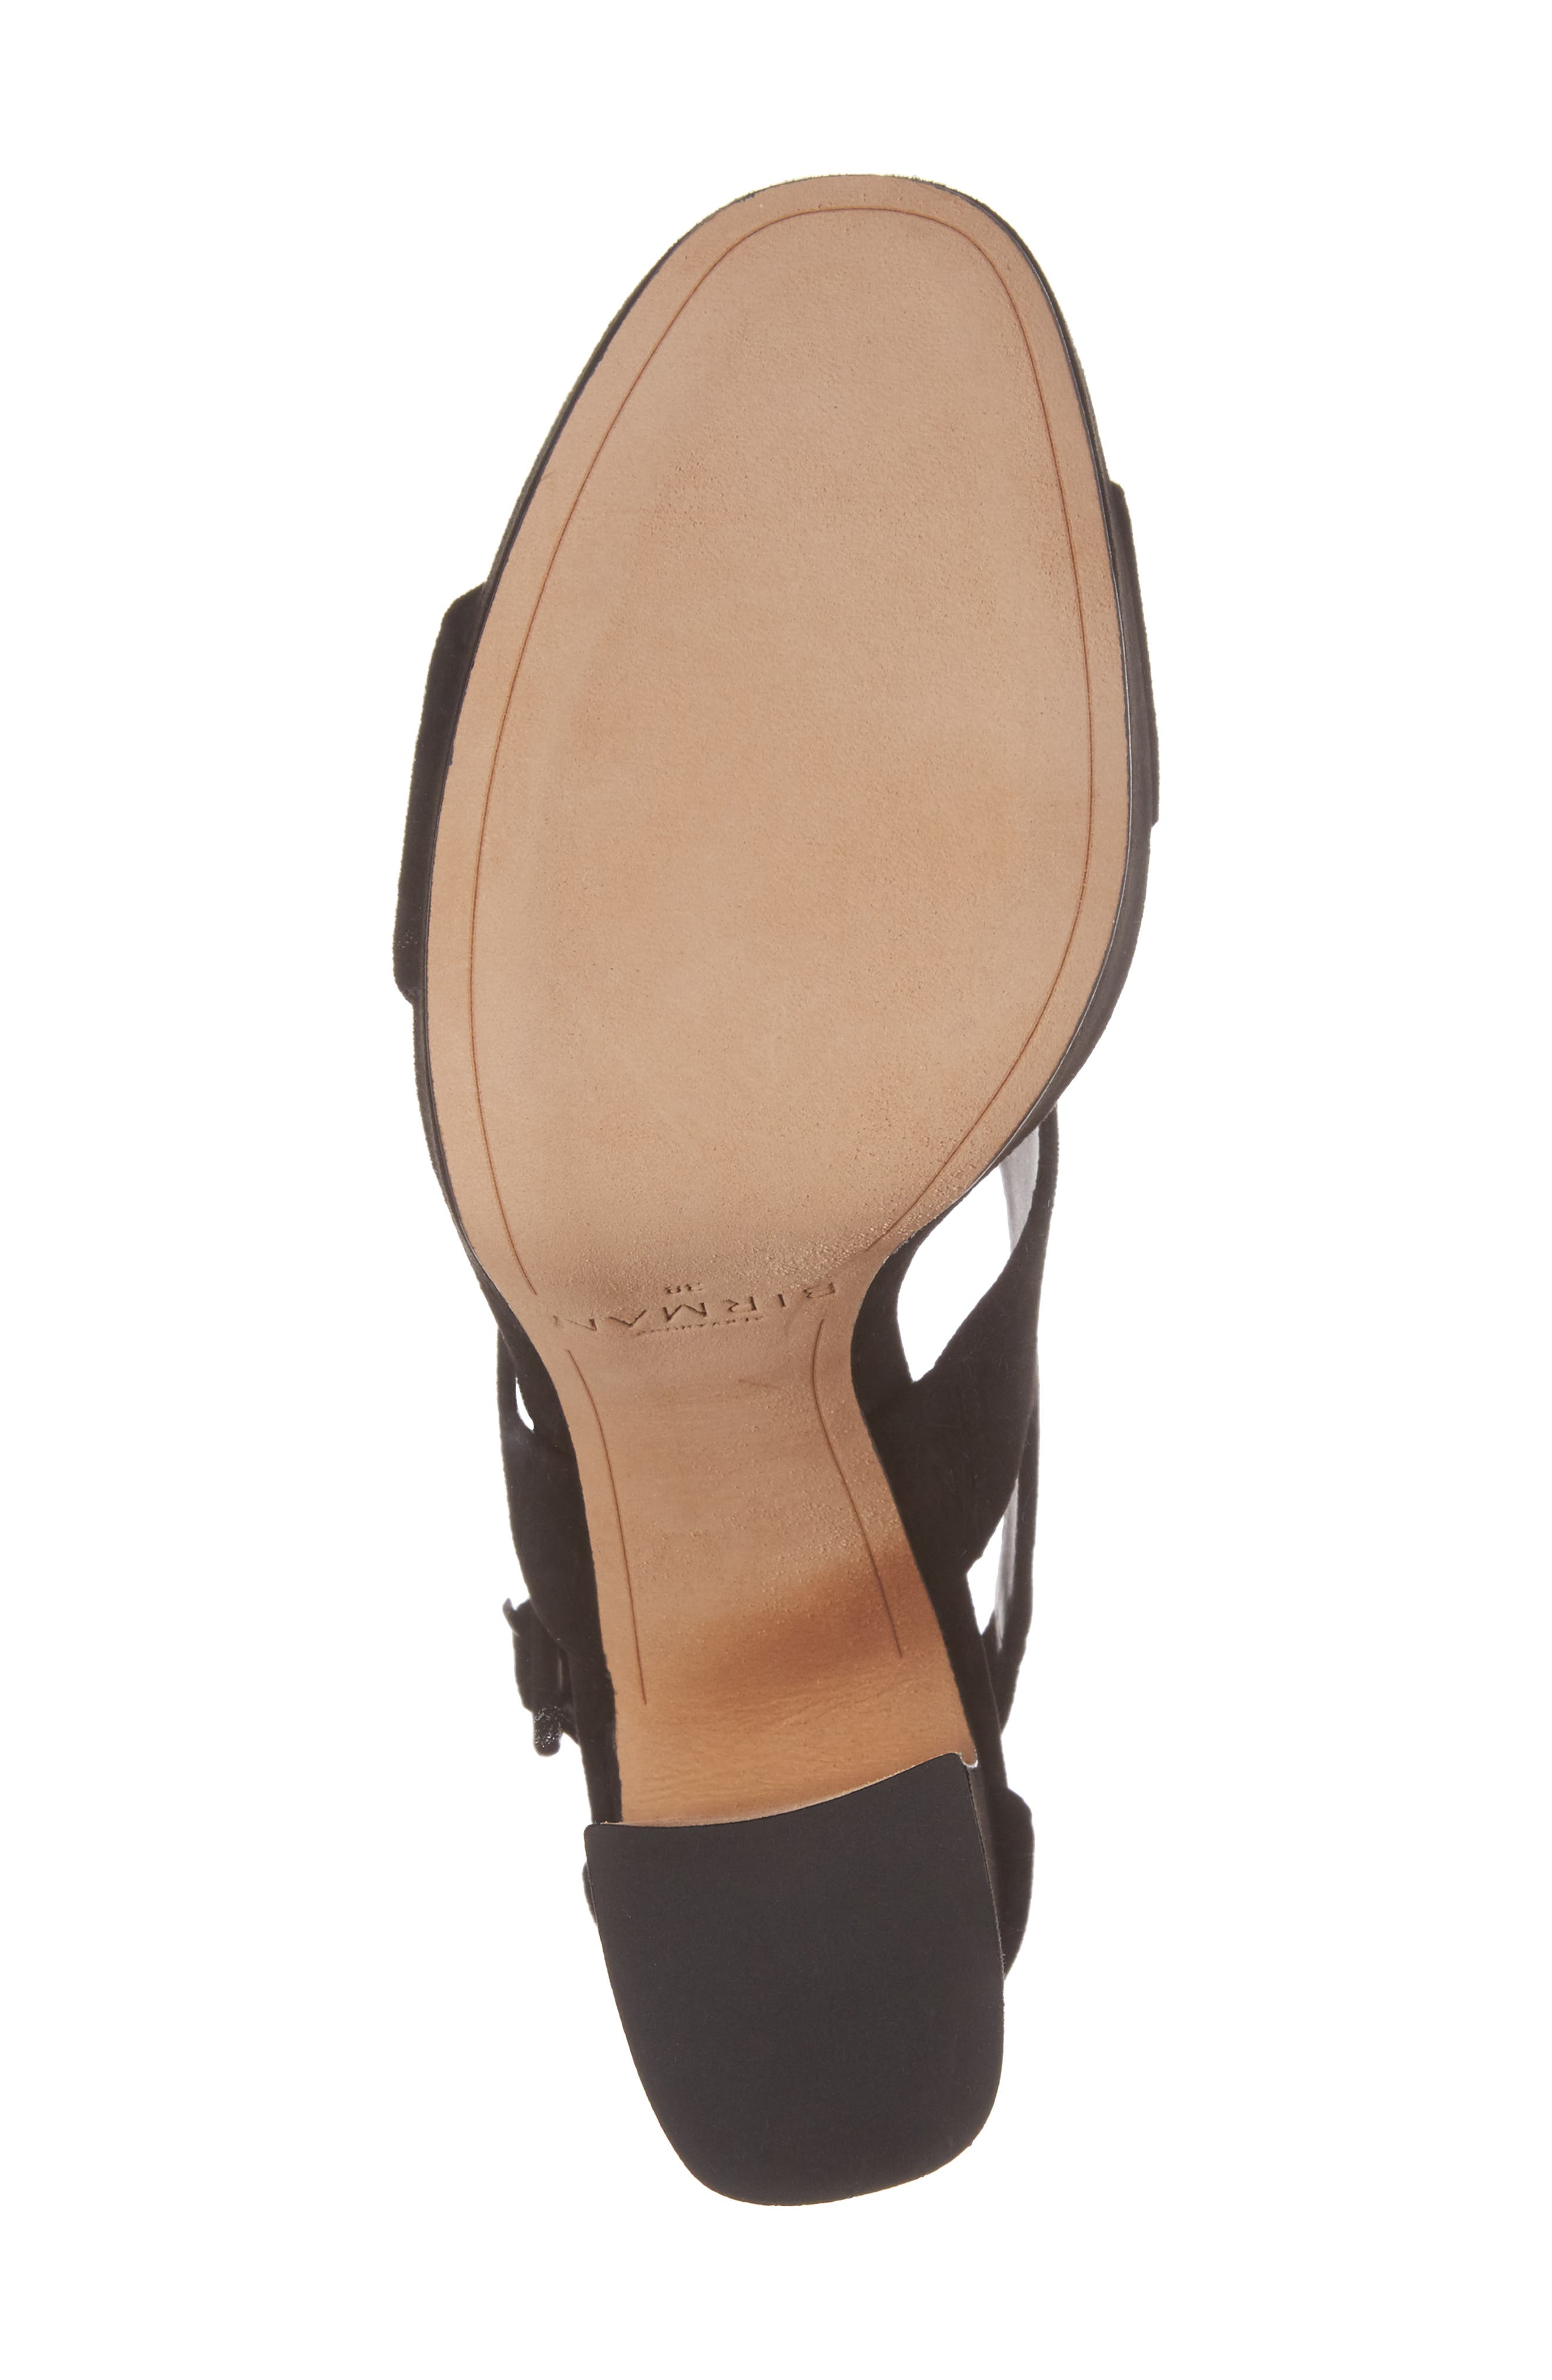 Elouise Platform Sandal,                             Alternate thumbnail 6, color,                             001